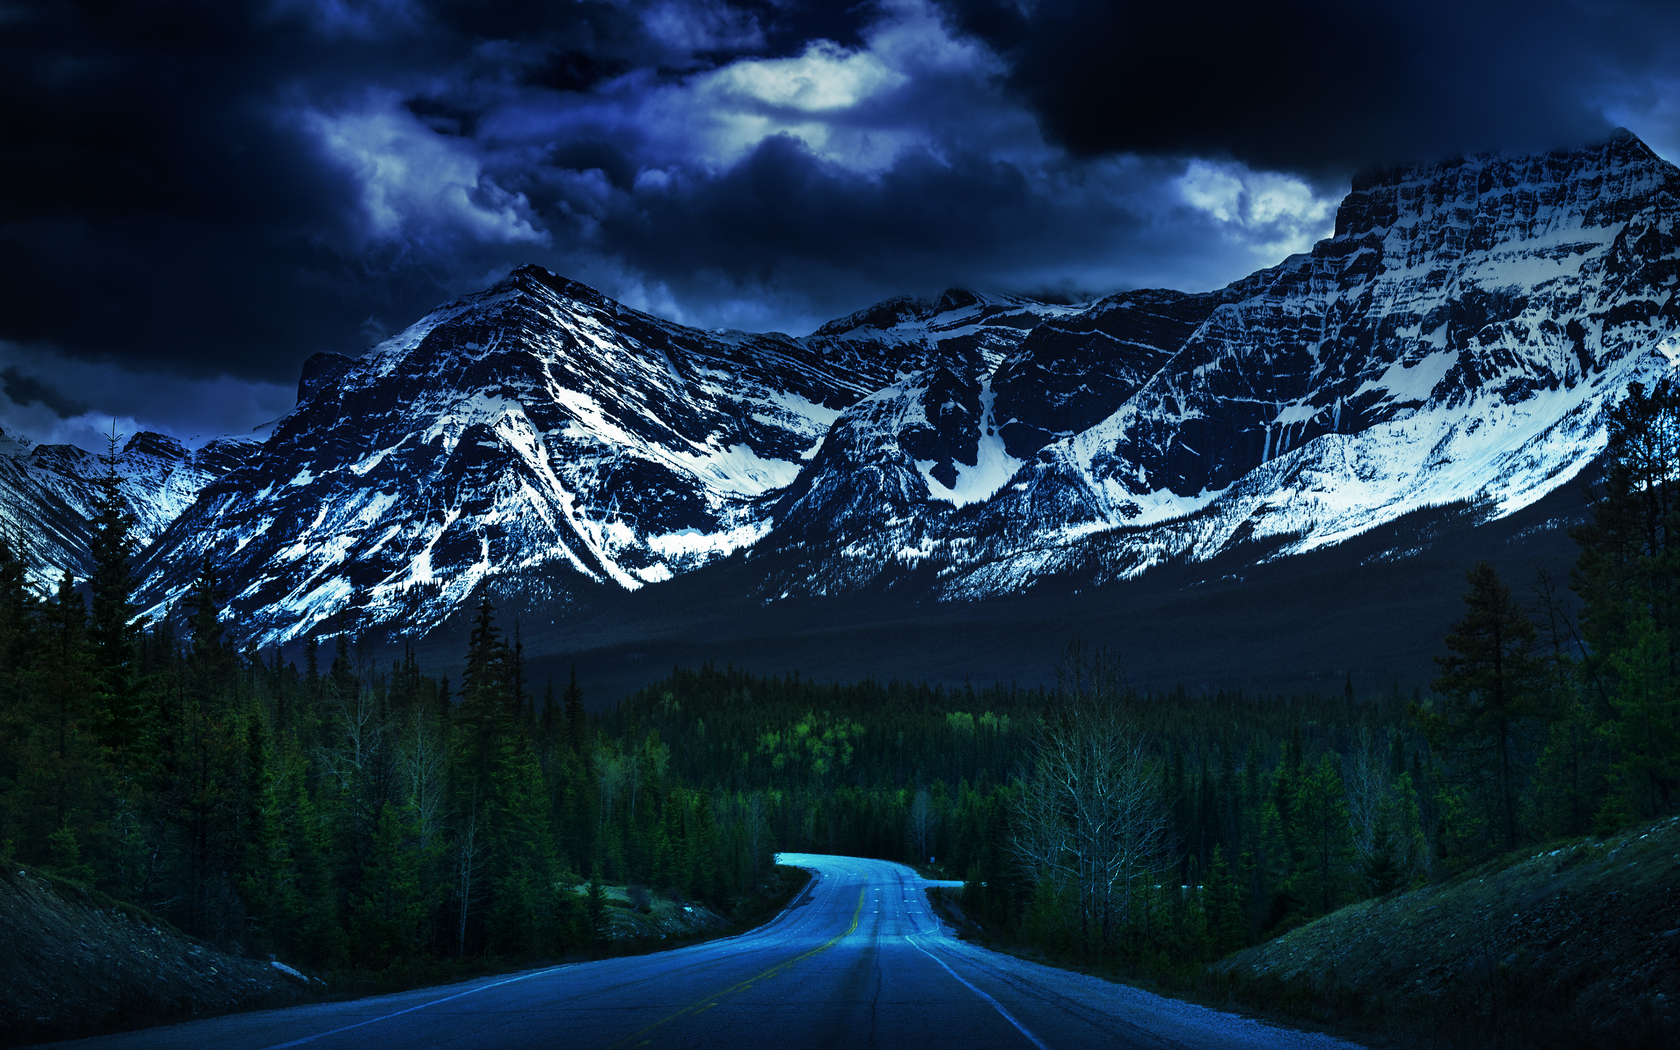 Long road to the mountains wallpaper 39567 1680x1050